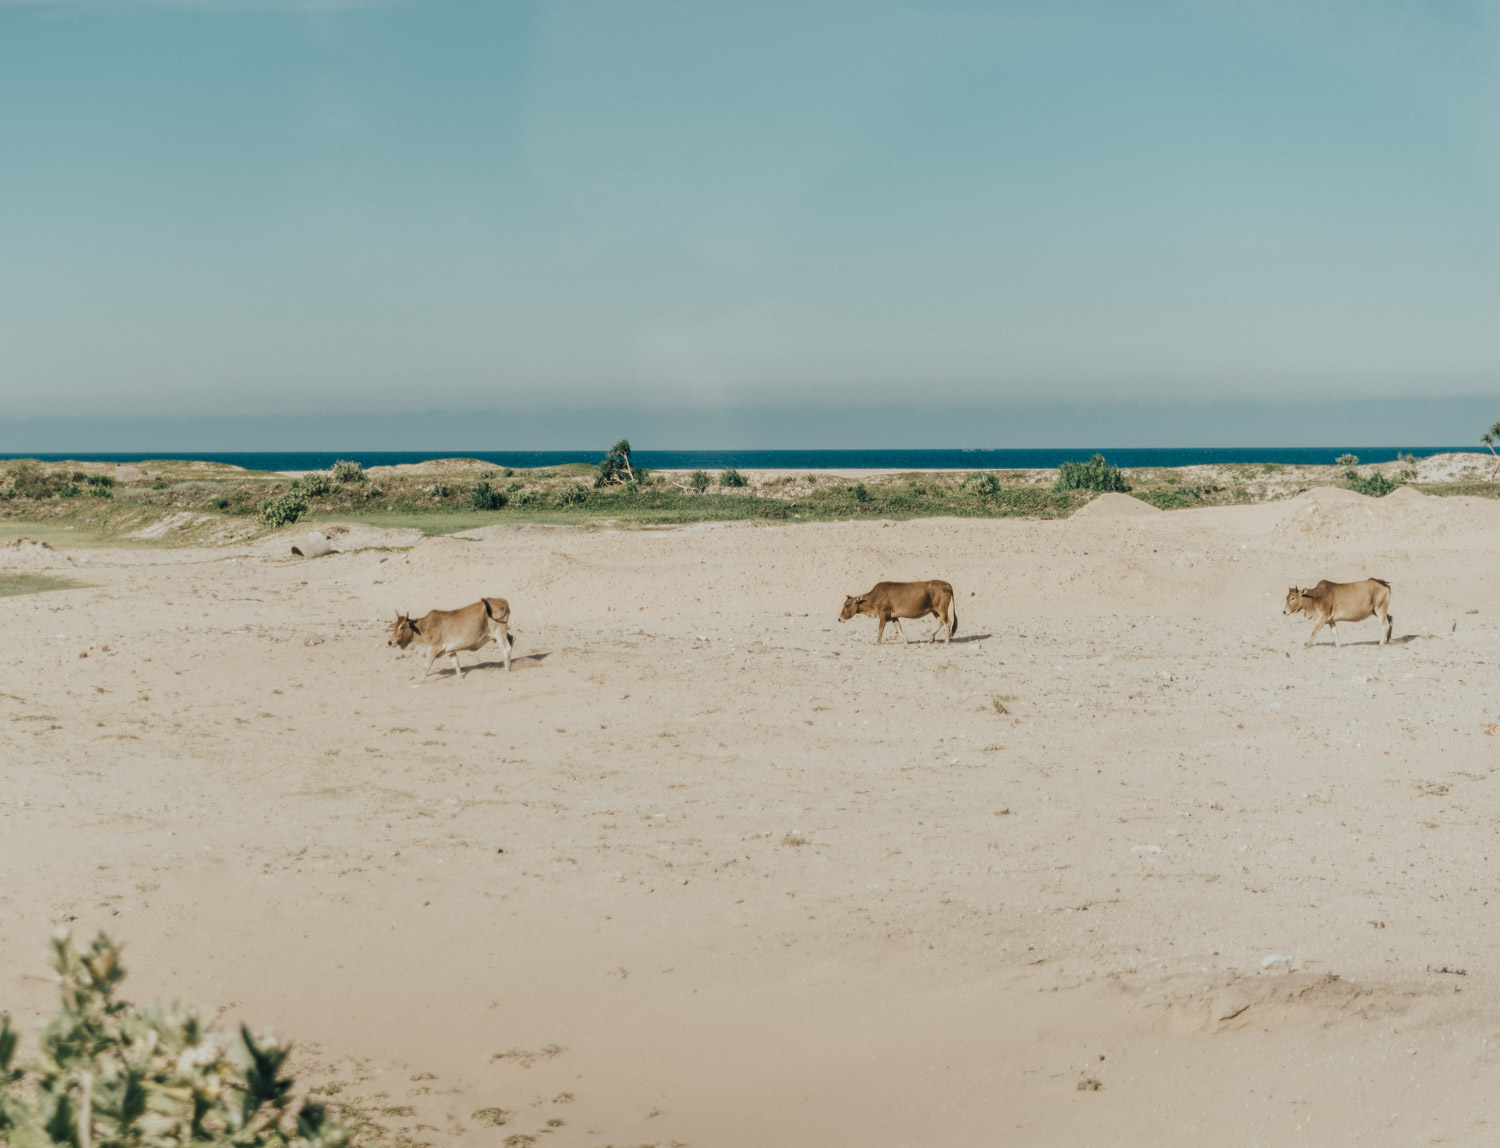 Cows on the beach in Phu Yen, Vietnam